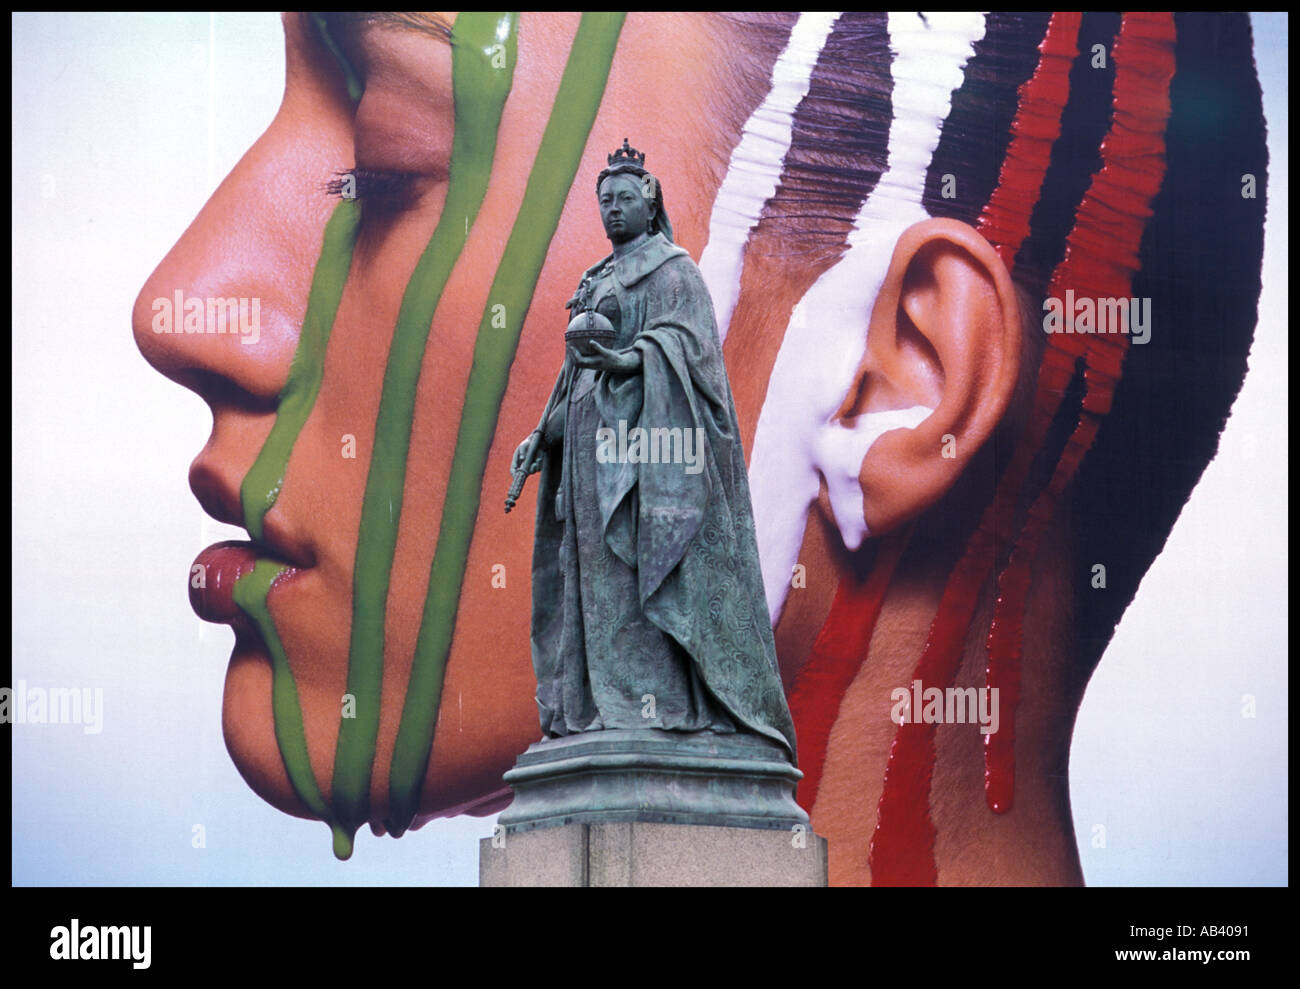 A statue of Queen Victoria against the backdrp of advertising Birmingham England UK - Stock Image